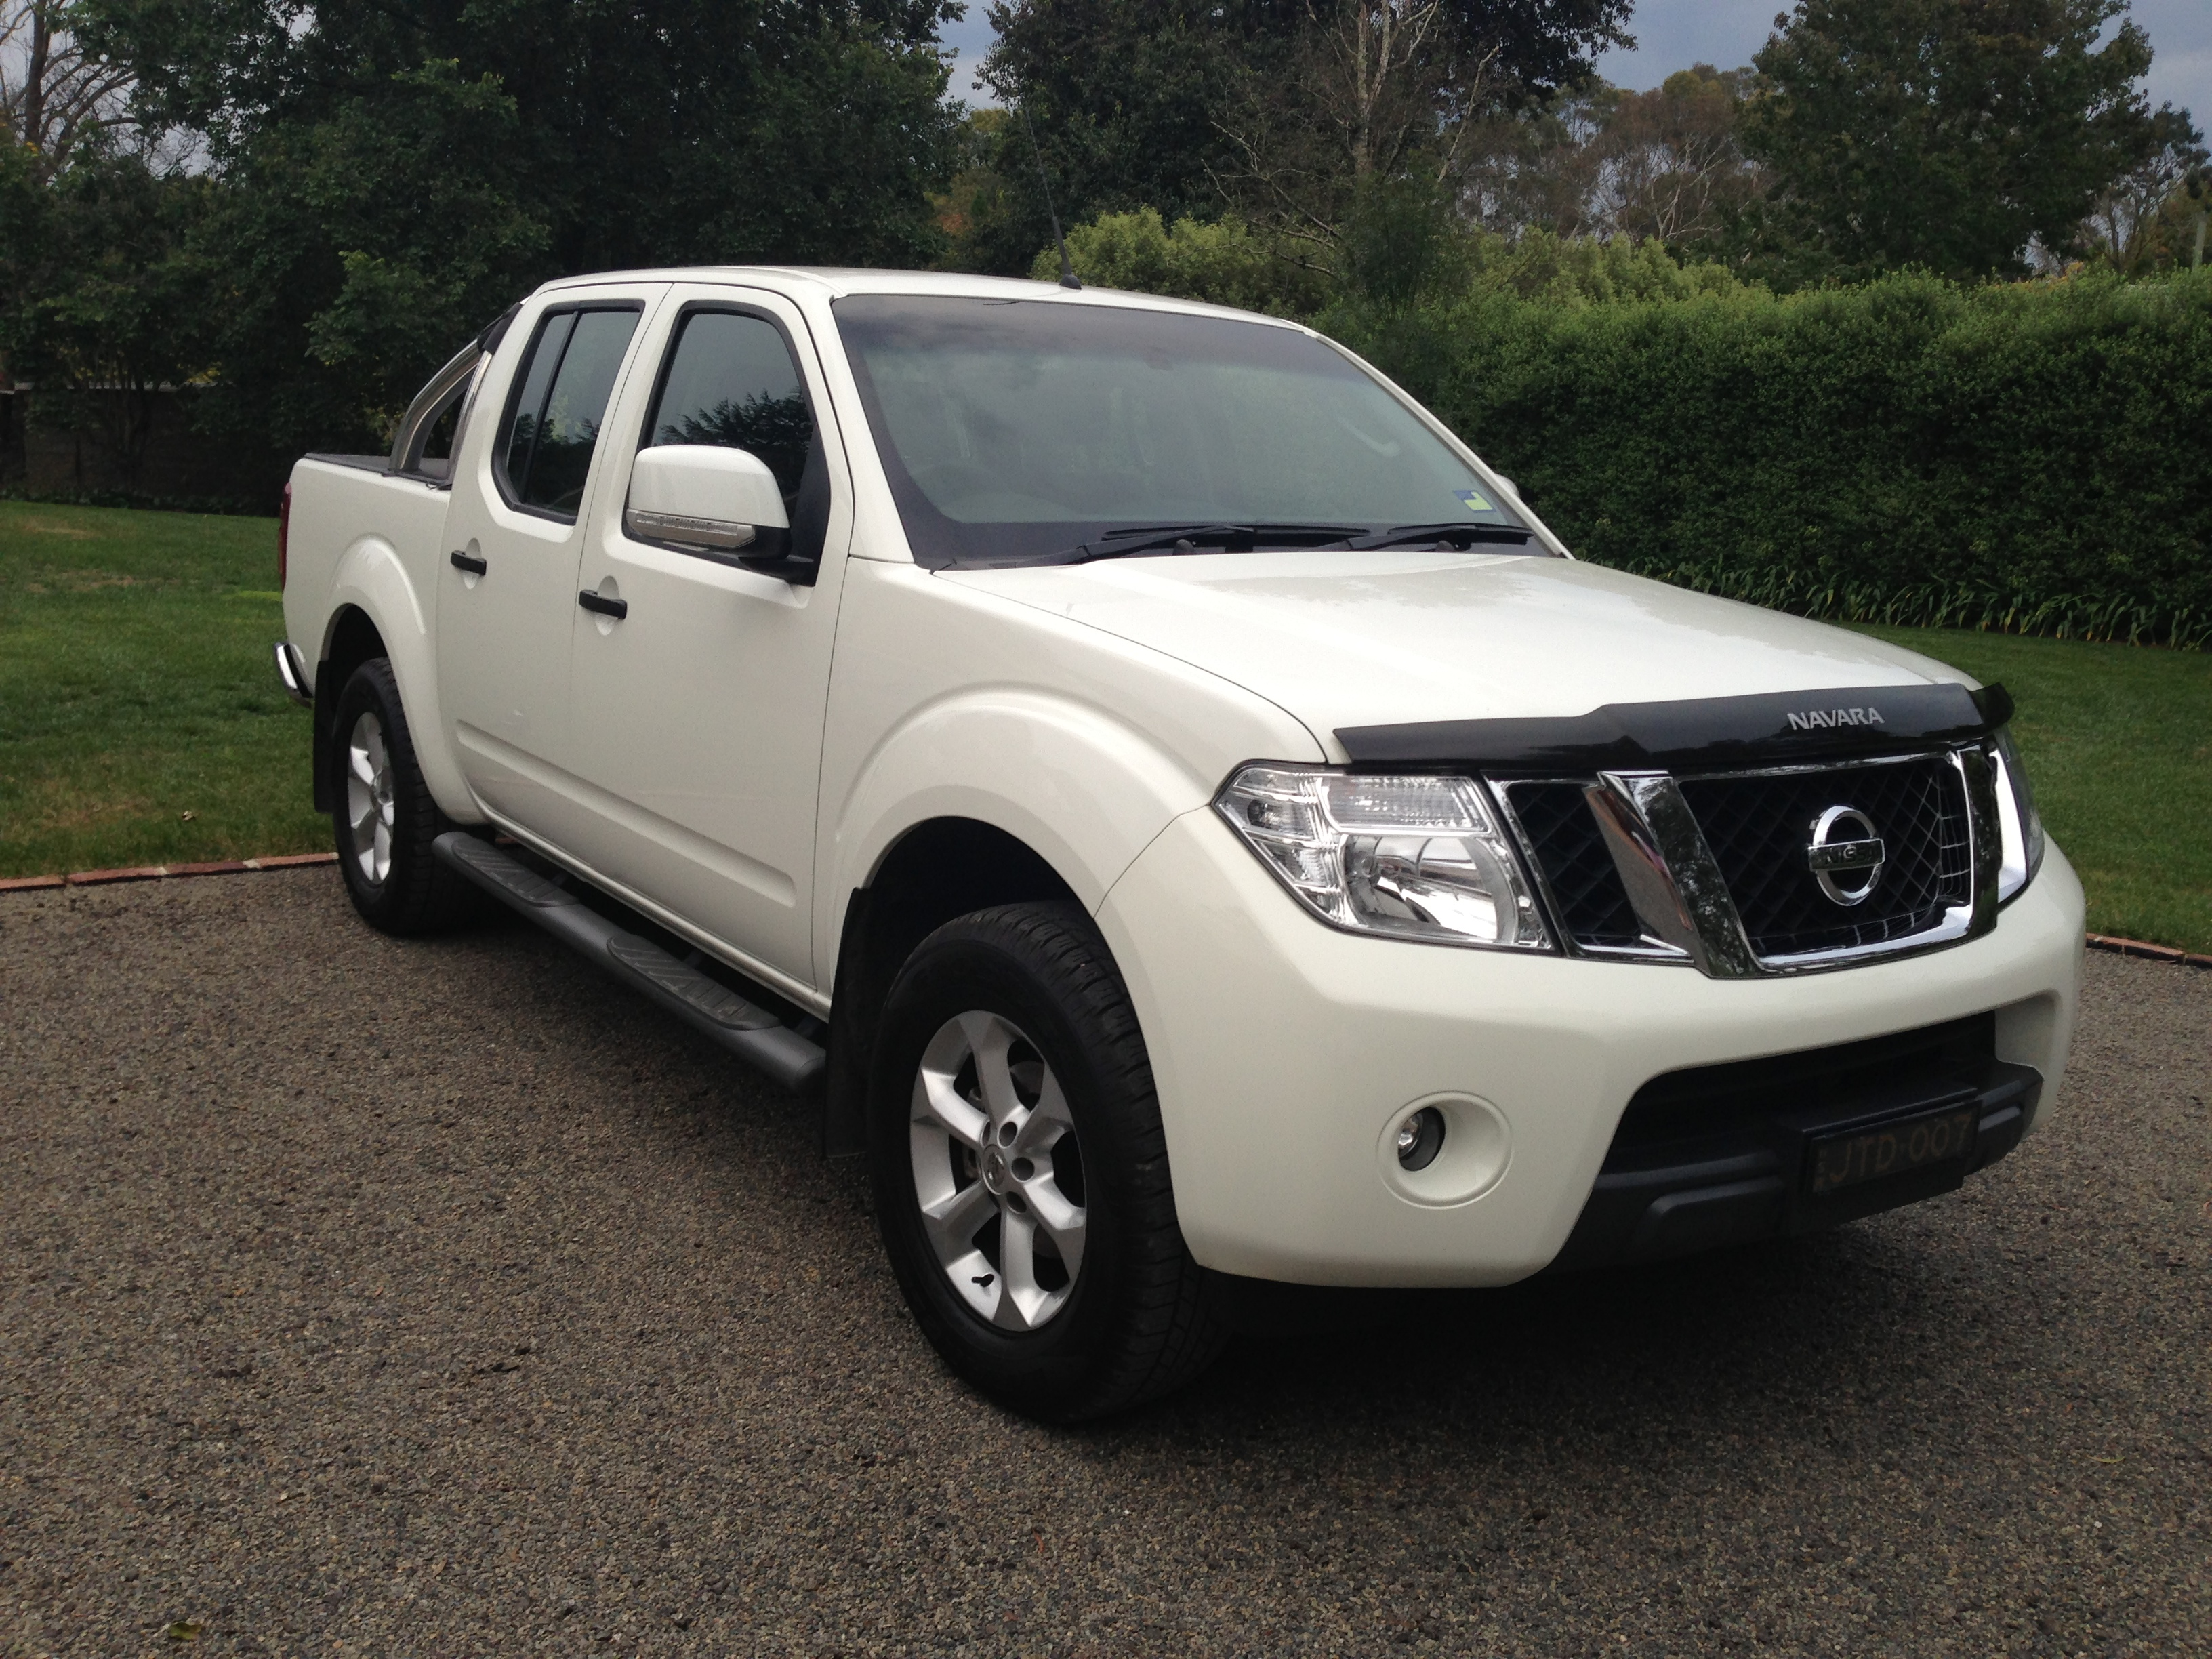 2012 nissan navara st 4x4 d40 my12 car sales nsw southern highlands. Black Bedroom Furniture Sets. Home Design Ideas